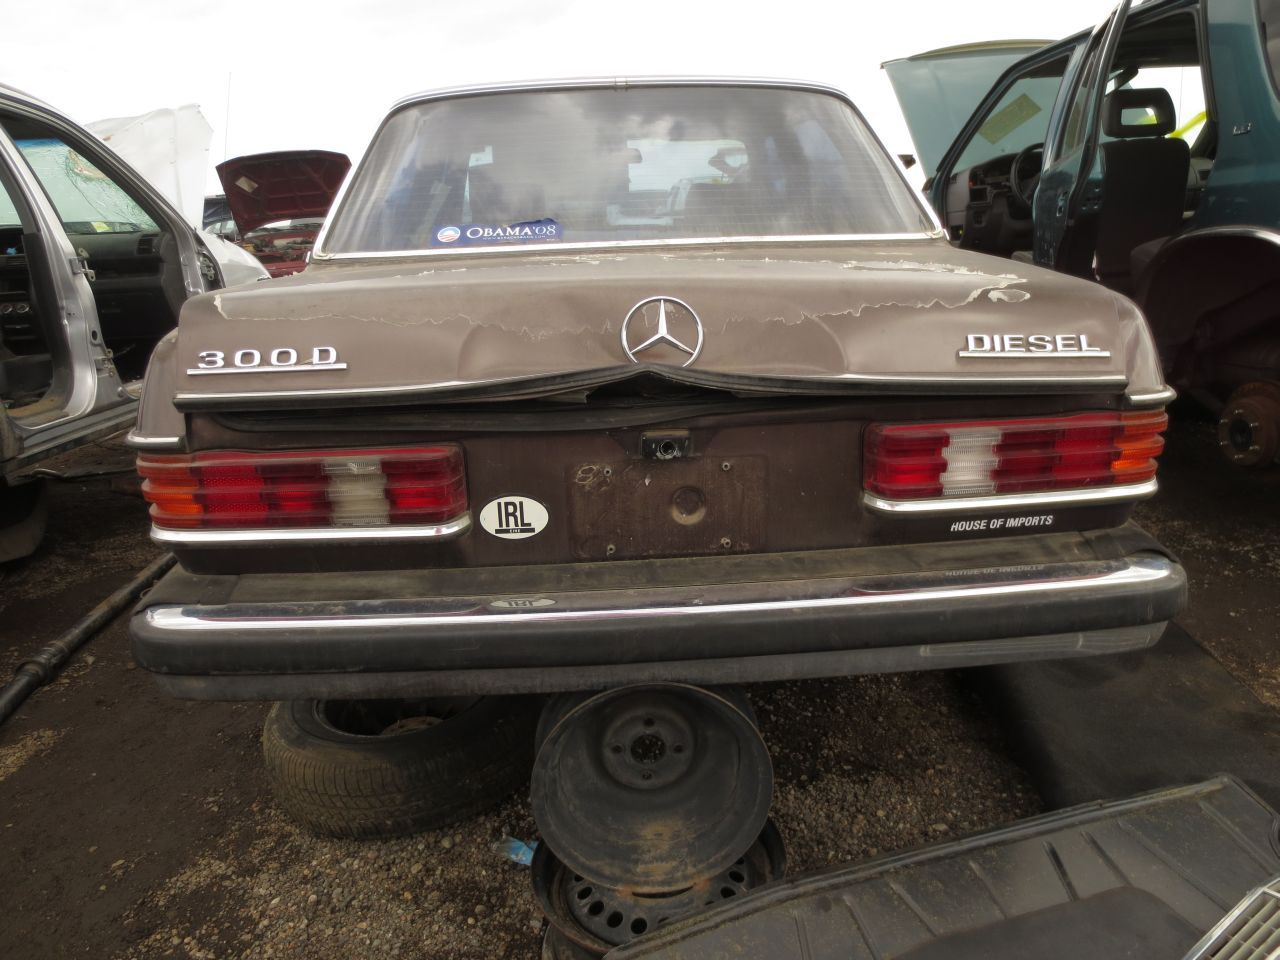 13 1978 mercedes benz 300d down on the junkyard picture courtesy of murilee